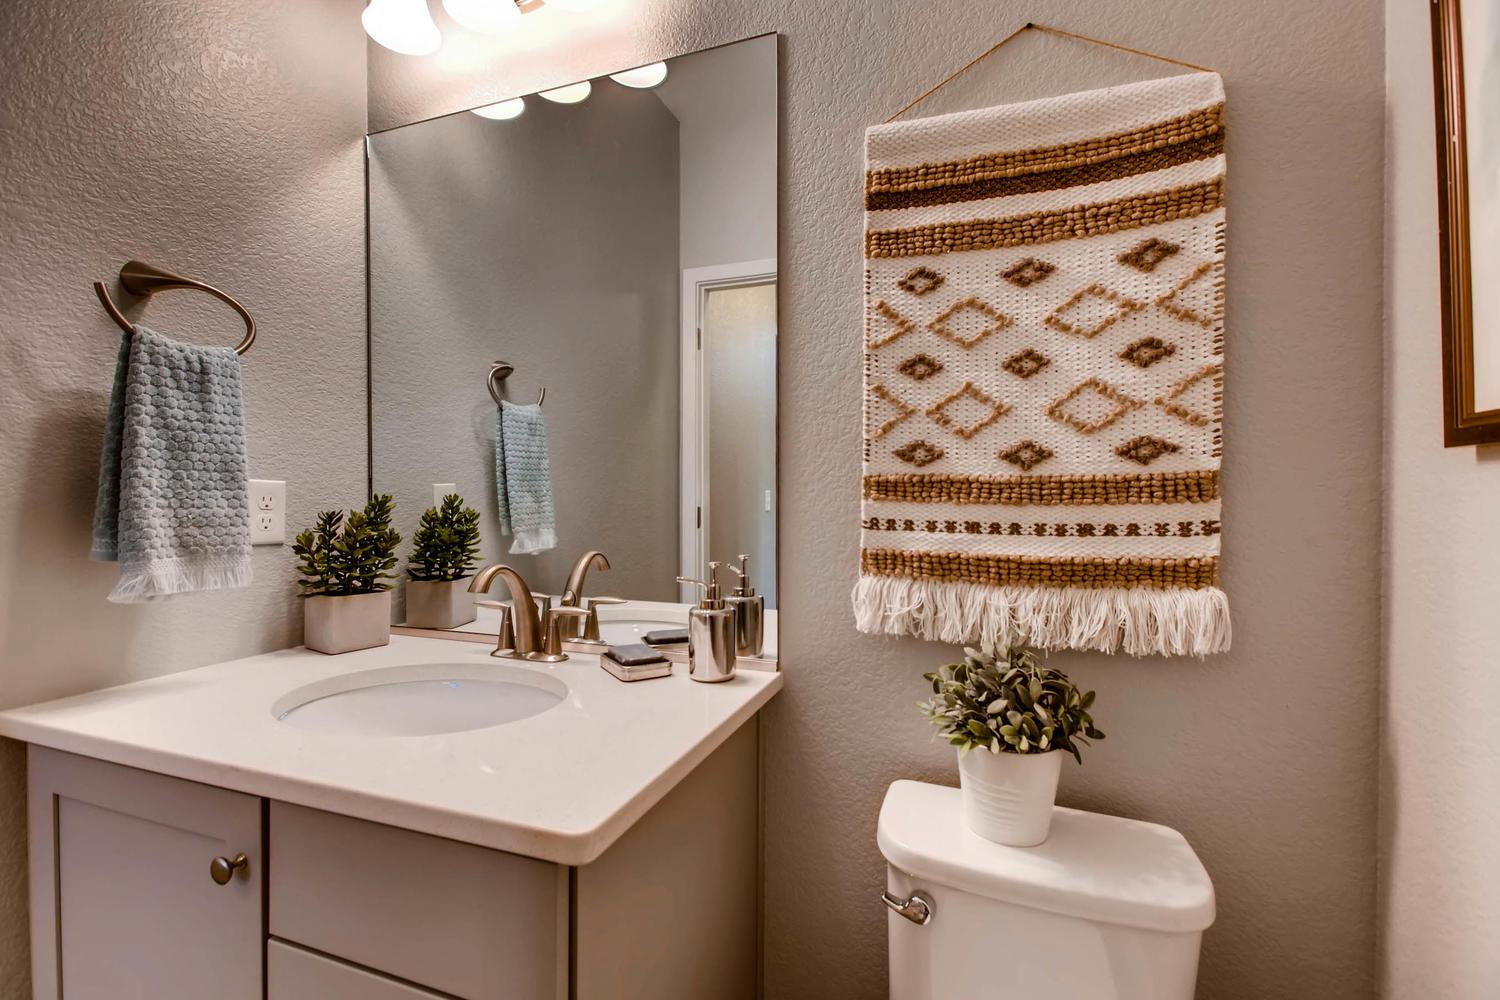 Bathroom featured in the Somerset By Classic Homes in Colorado Springs, CO